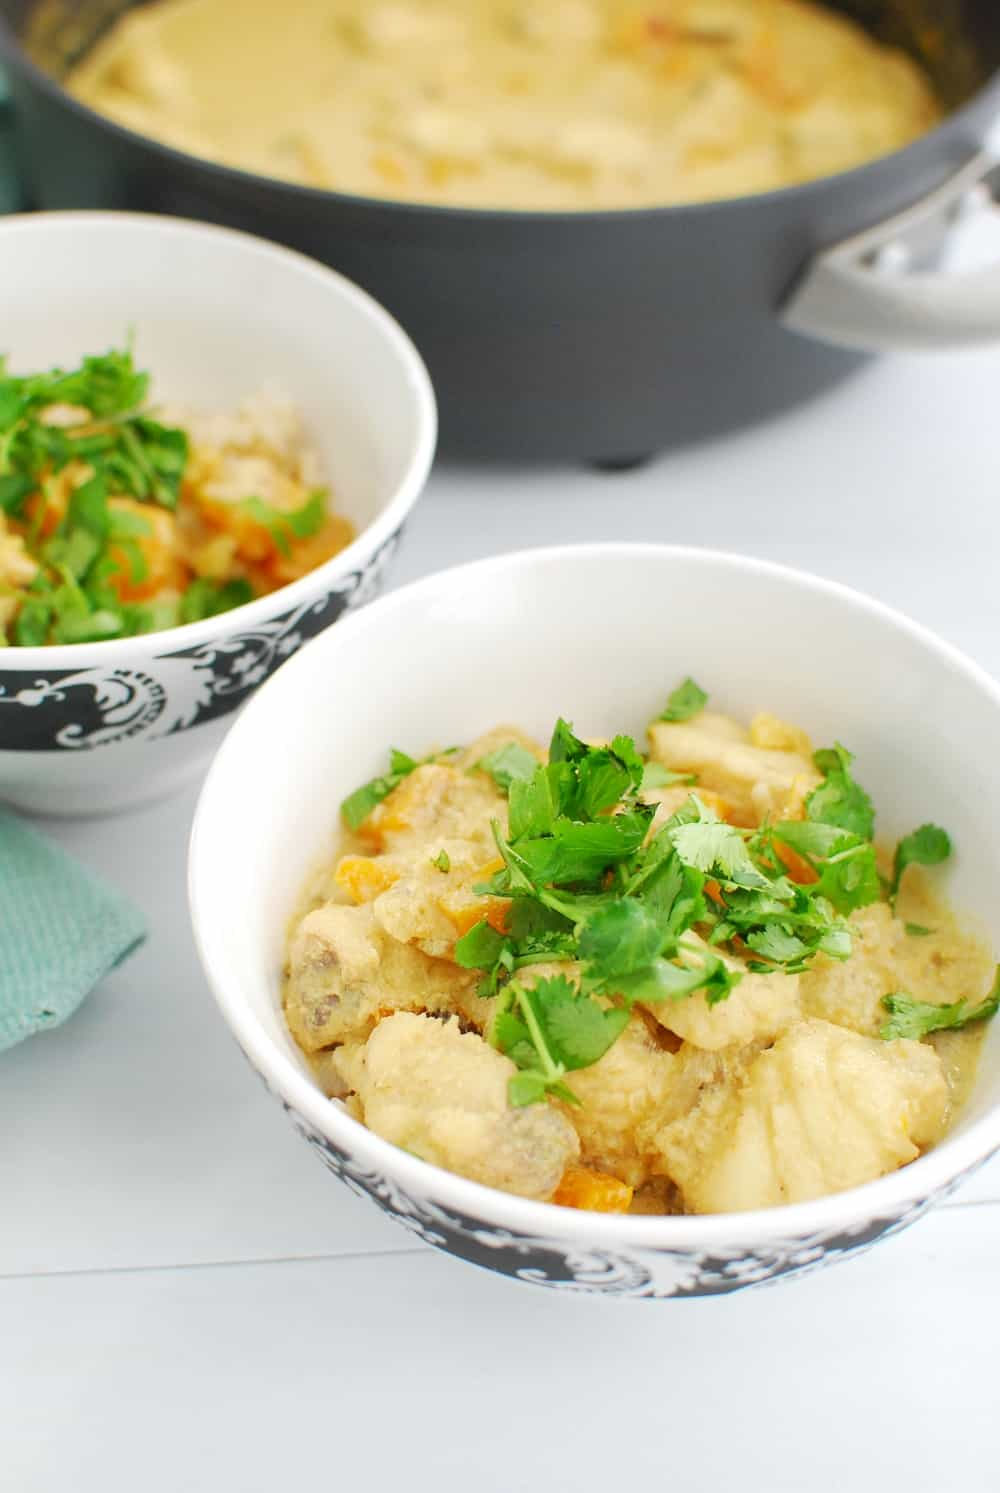 A bowl full of thai fish curry garnished with cilantro